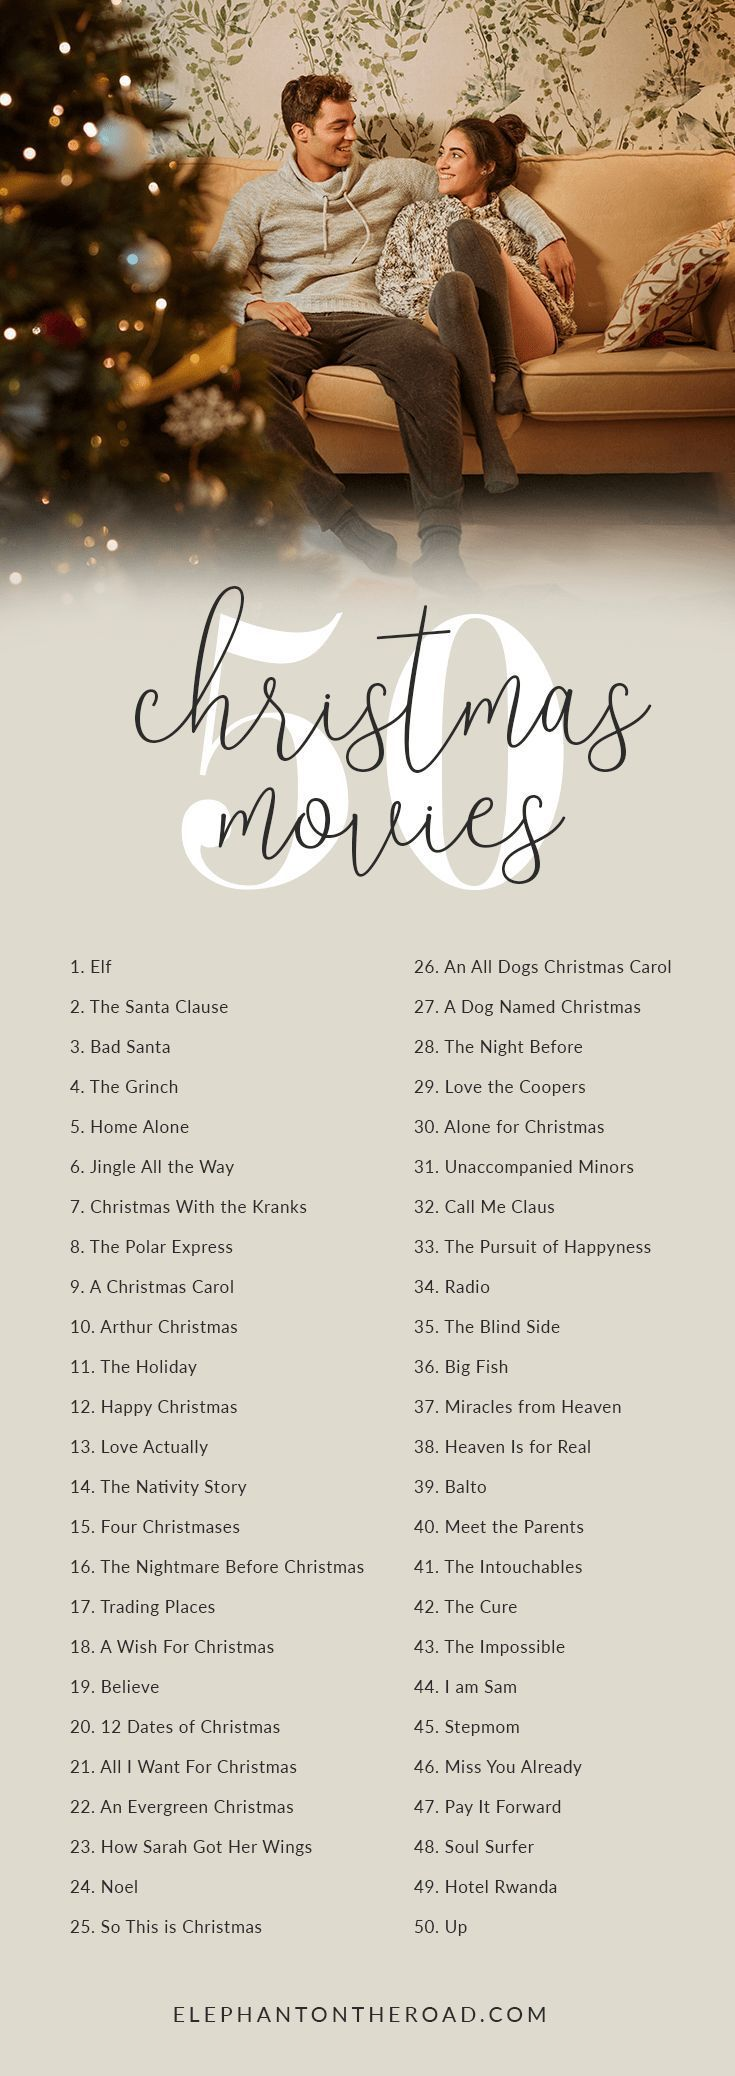 The Most Complete Christmas Movie Guide — Elephant On The Road